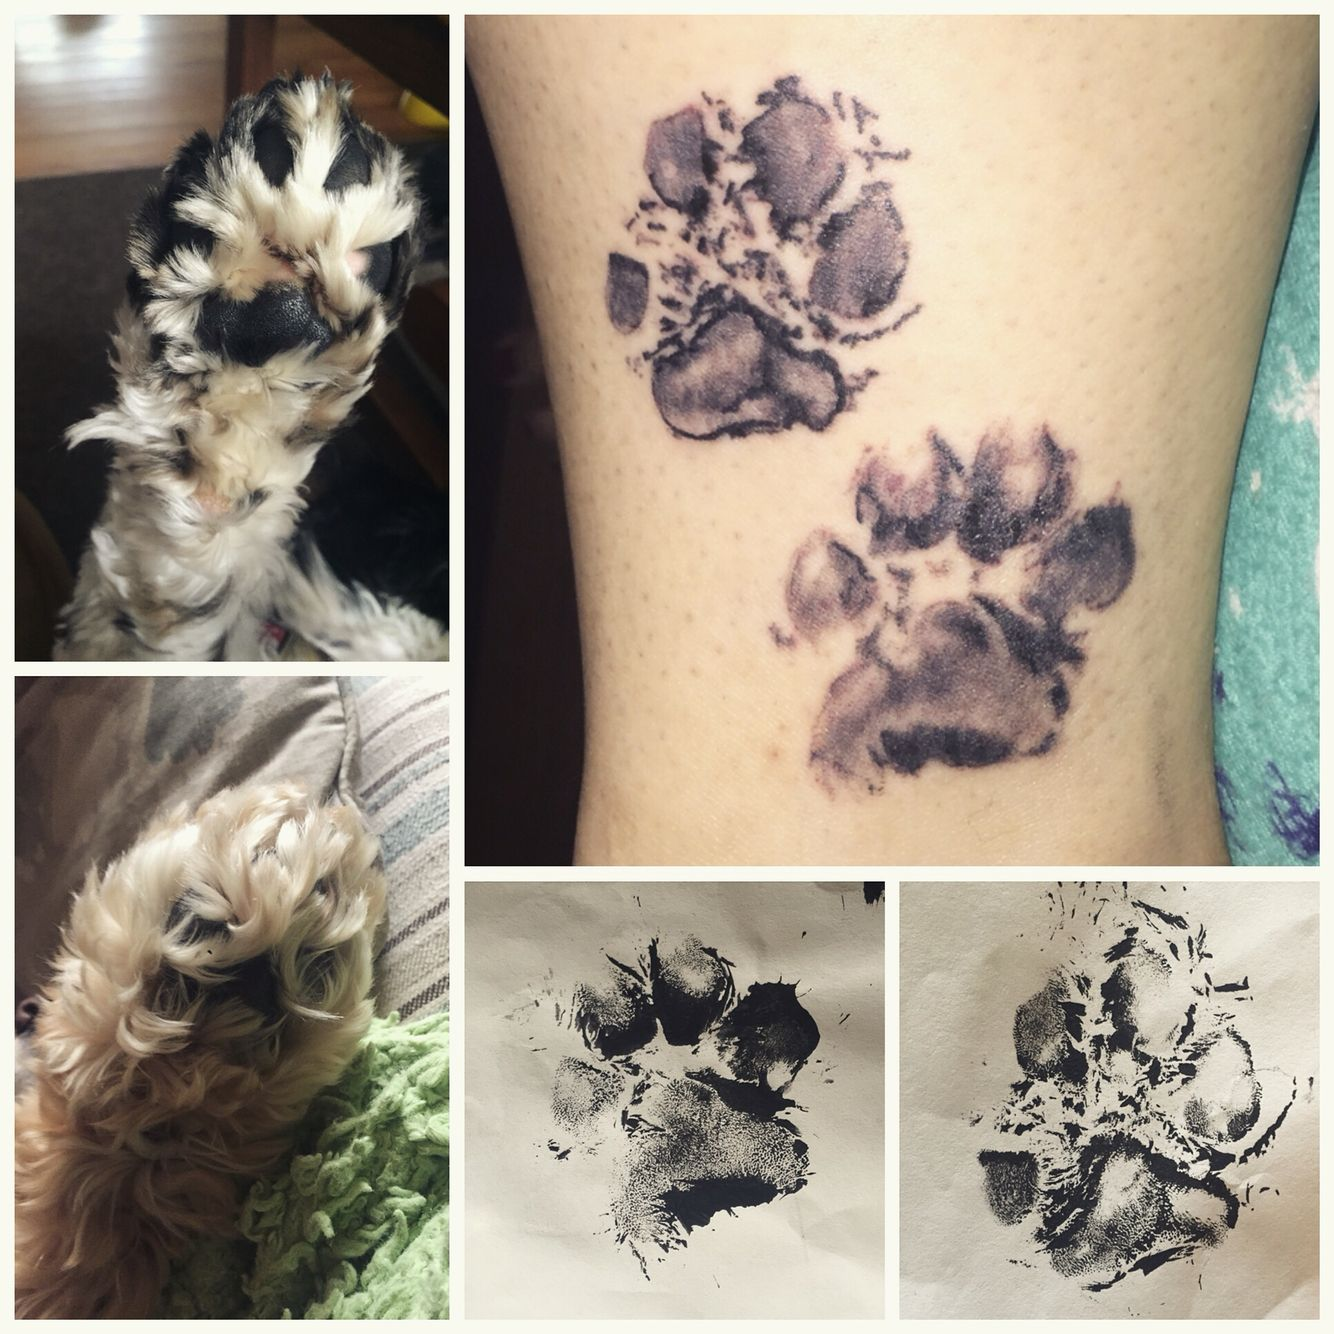 Pet Paw Print Tattoo: My Own Personal Tattoo! It's The Actual Paw Print Of My